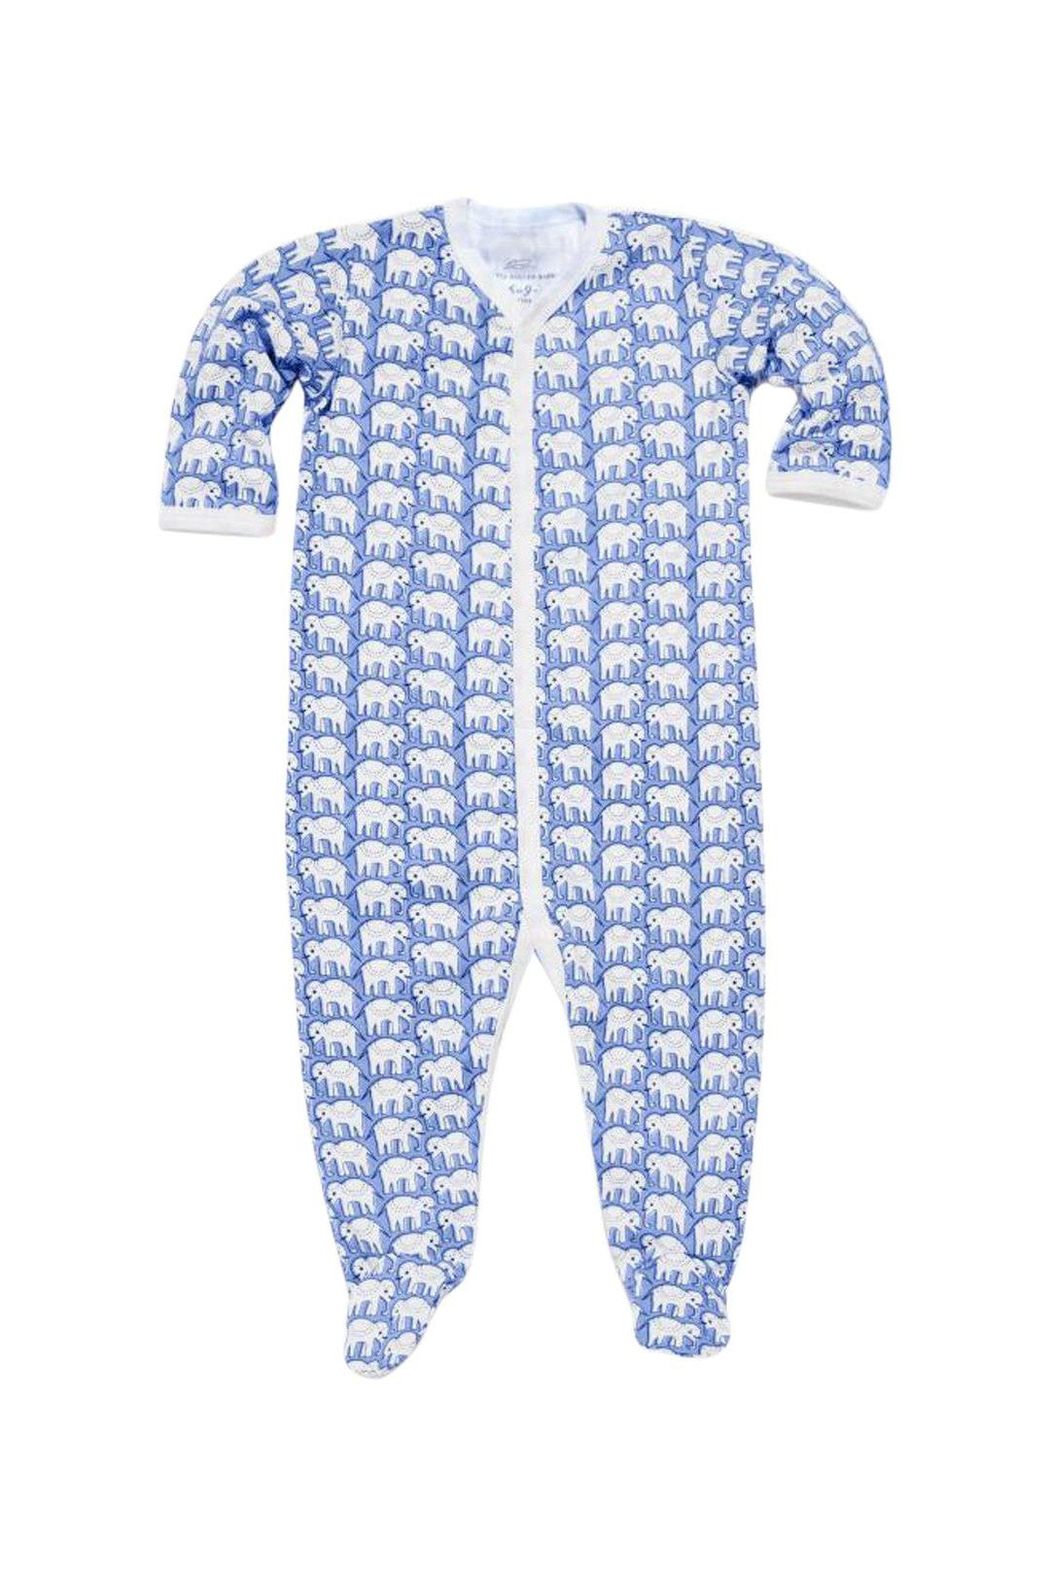 Roberta Roller Rabbit Elephant Snap Suit - Front Cropped Image